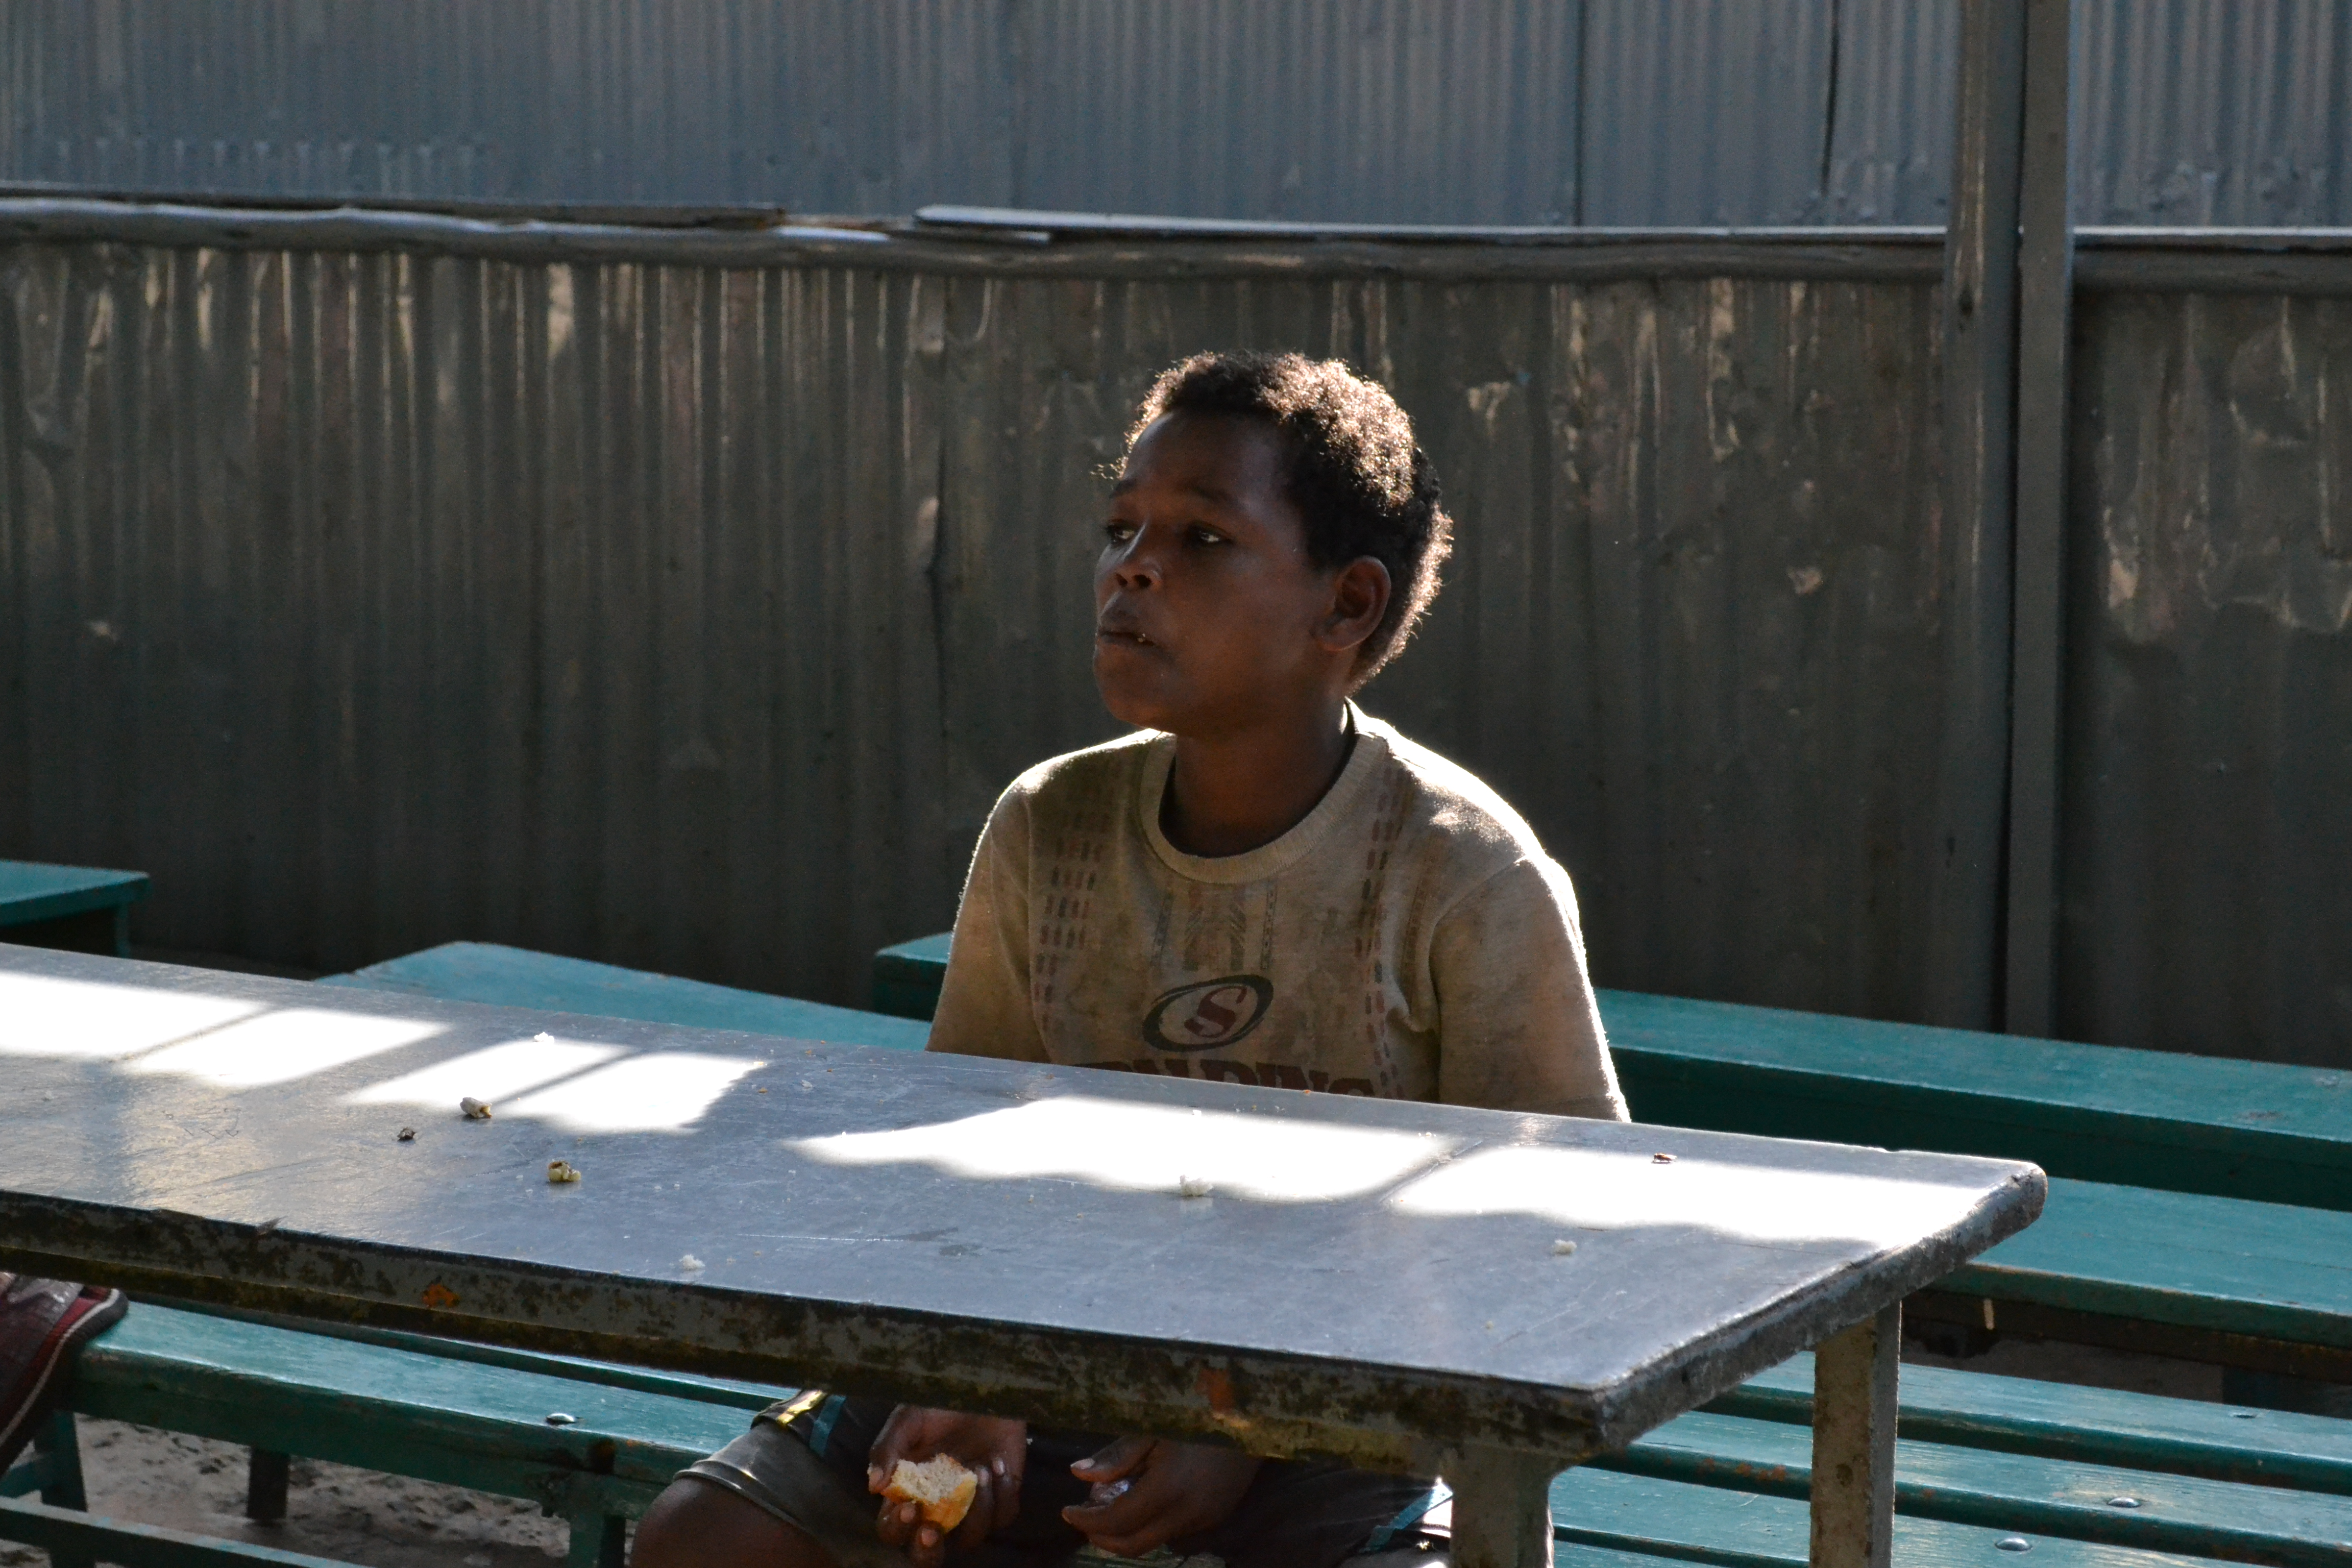 Young Ethiopian boy sitting by himself